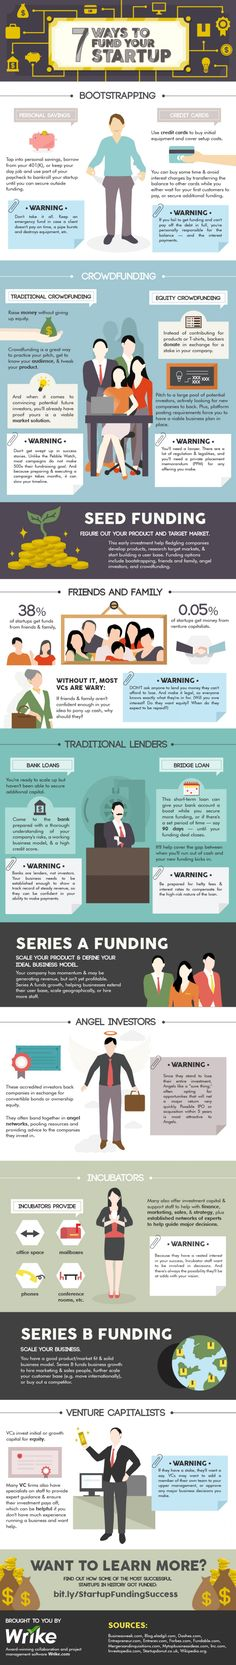 #Infographic: 7 Easy Ways to Fund Your #Startup.